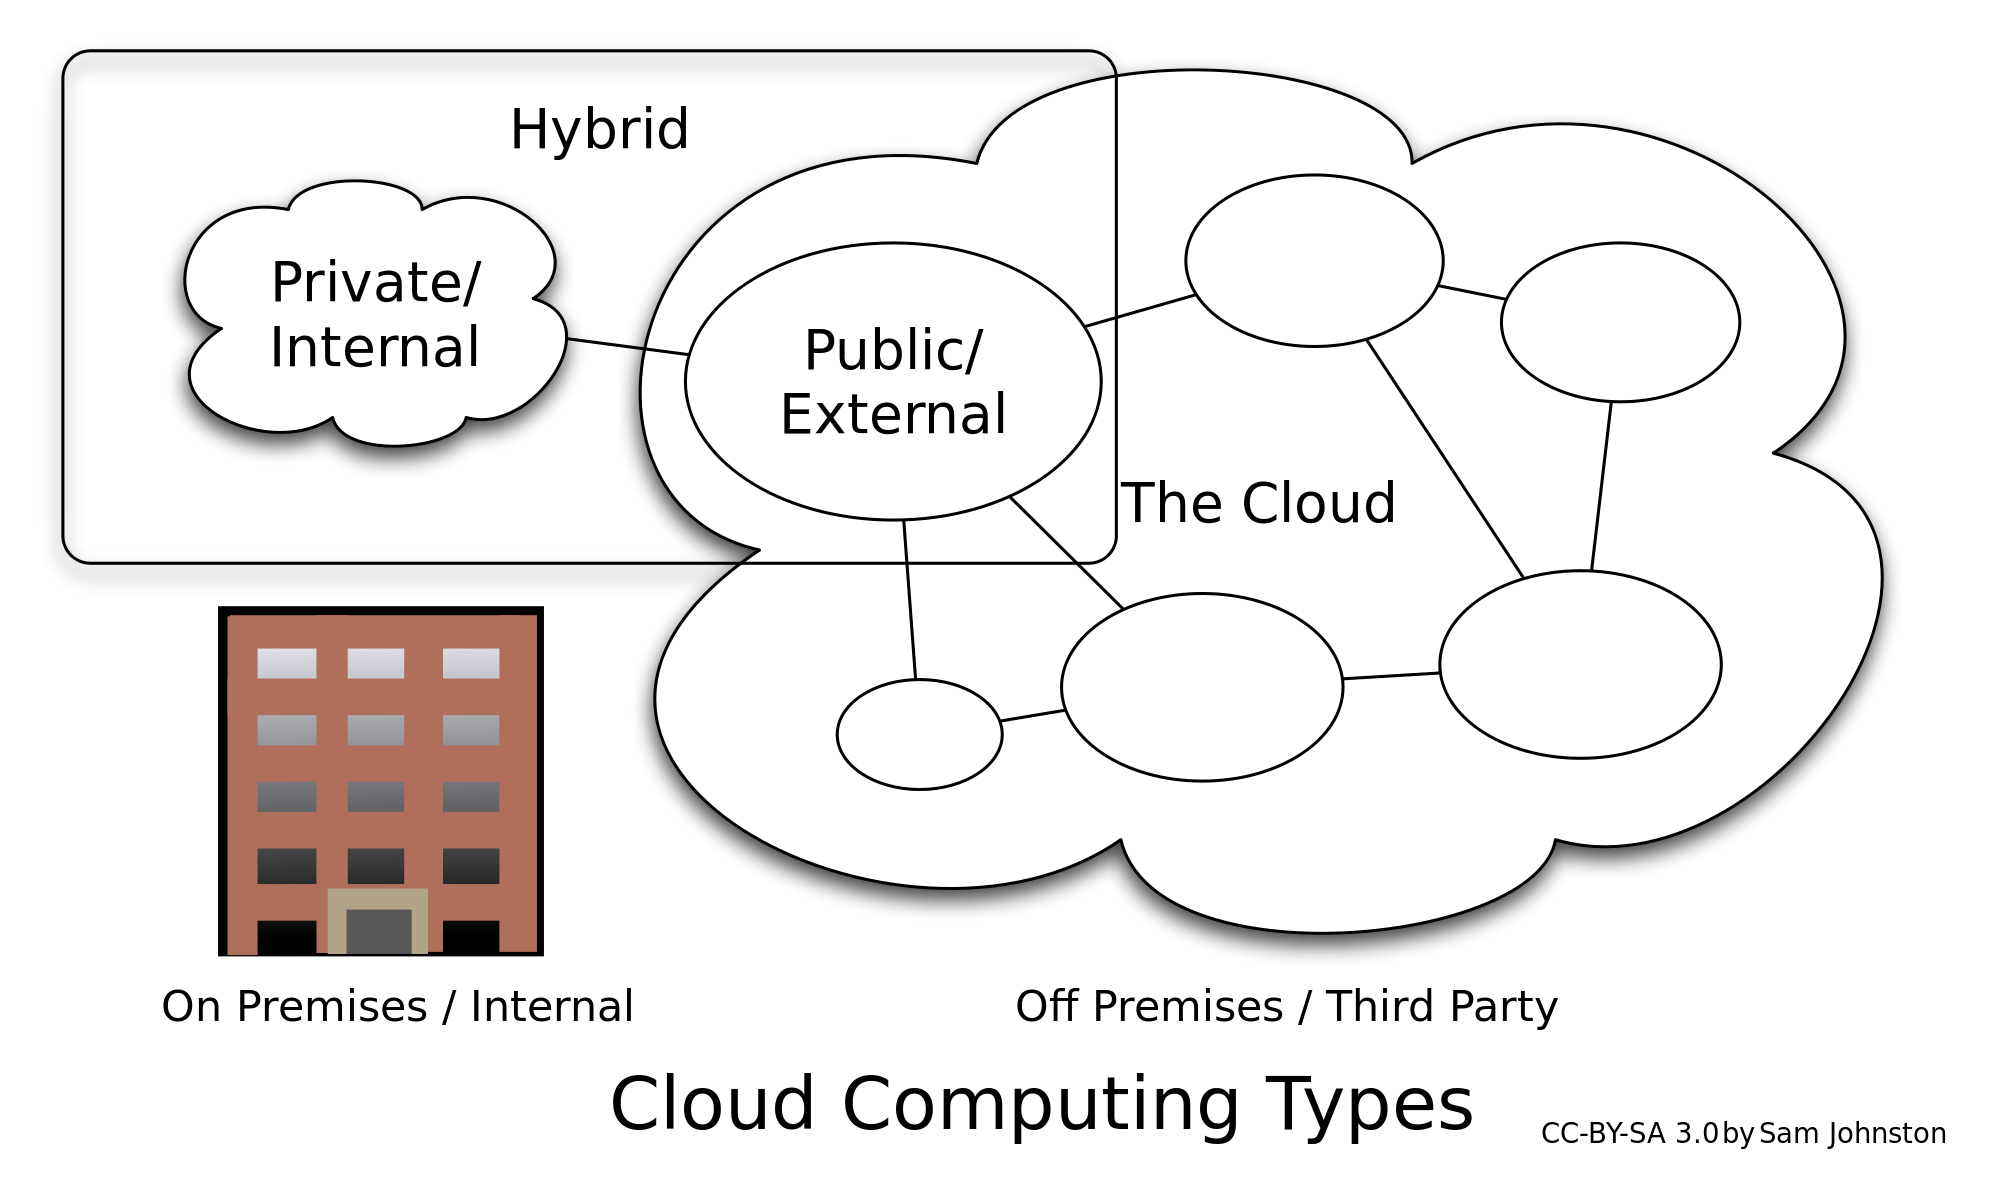 Centralized logging is difficult with public cloud and hybrid cloud situations